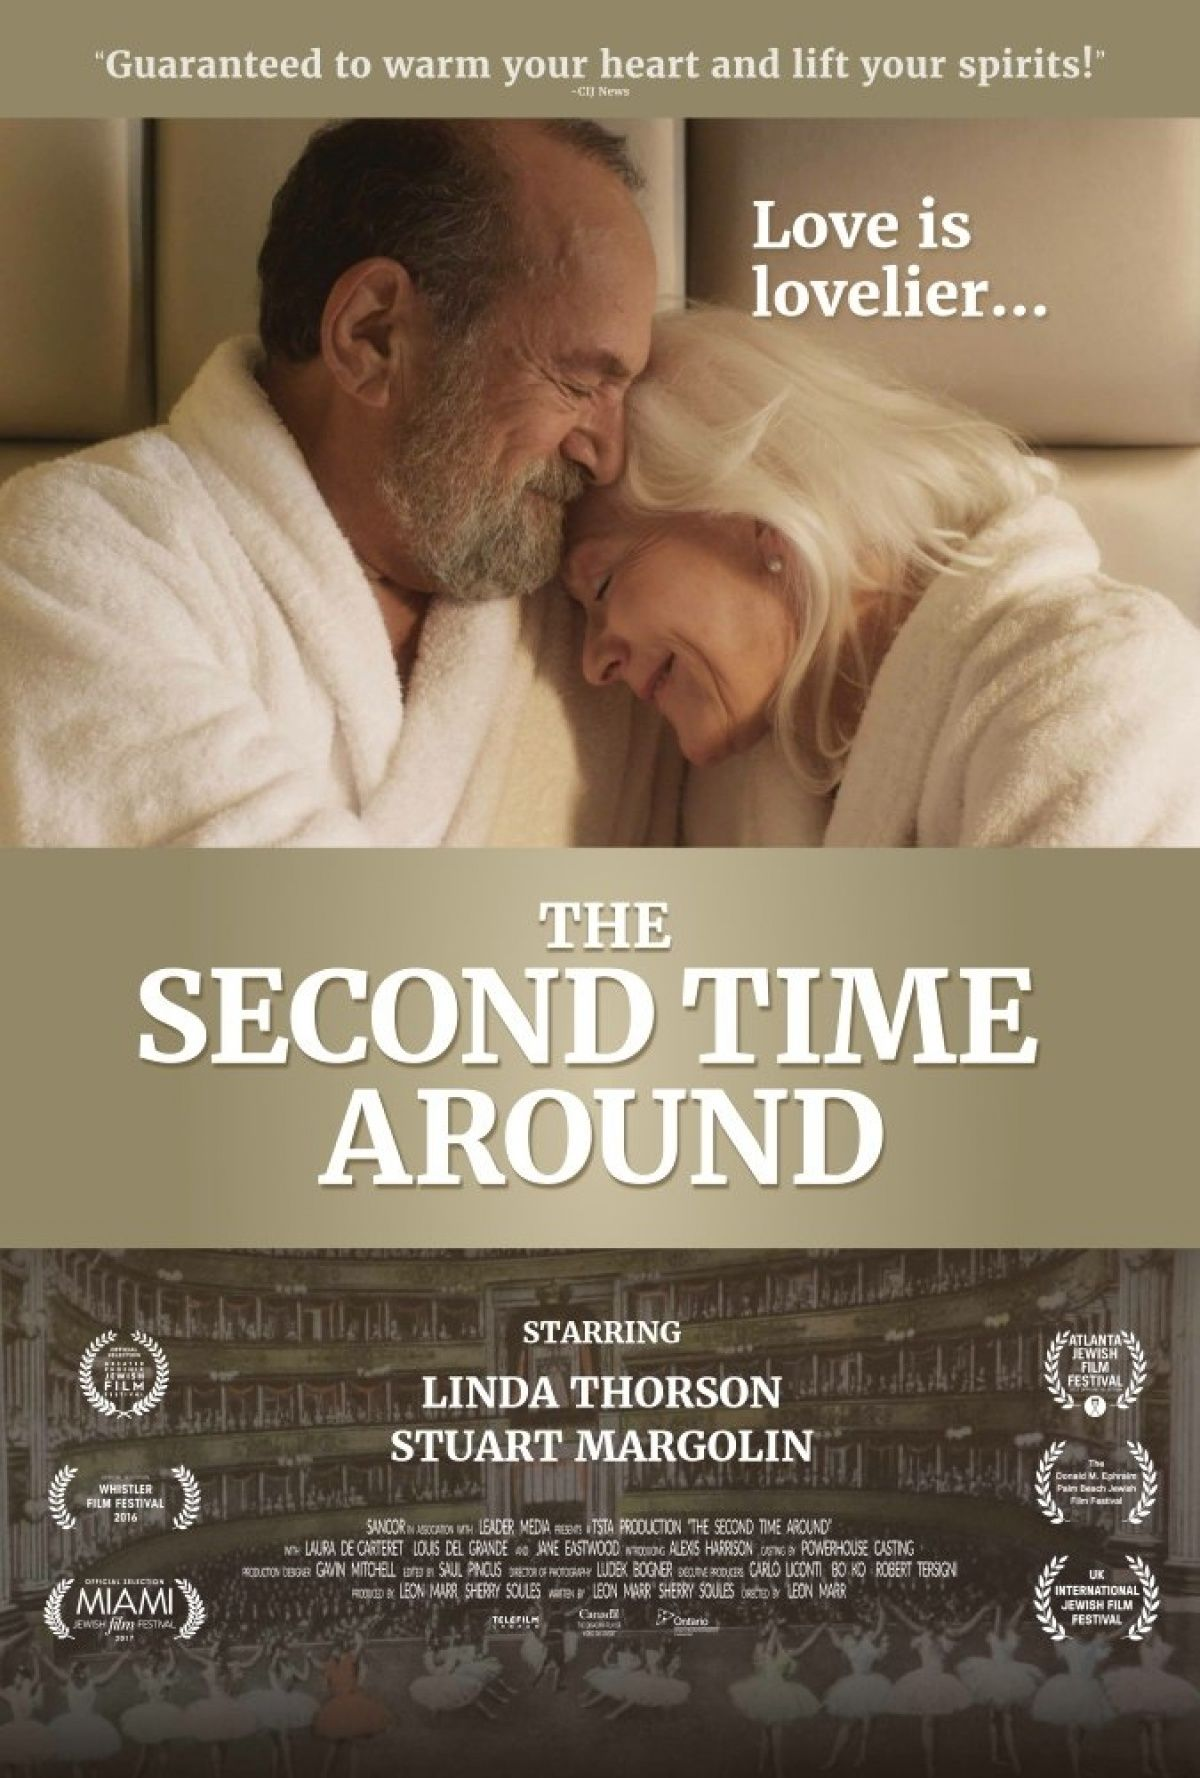 'The Second Time Around' movie poster